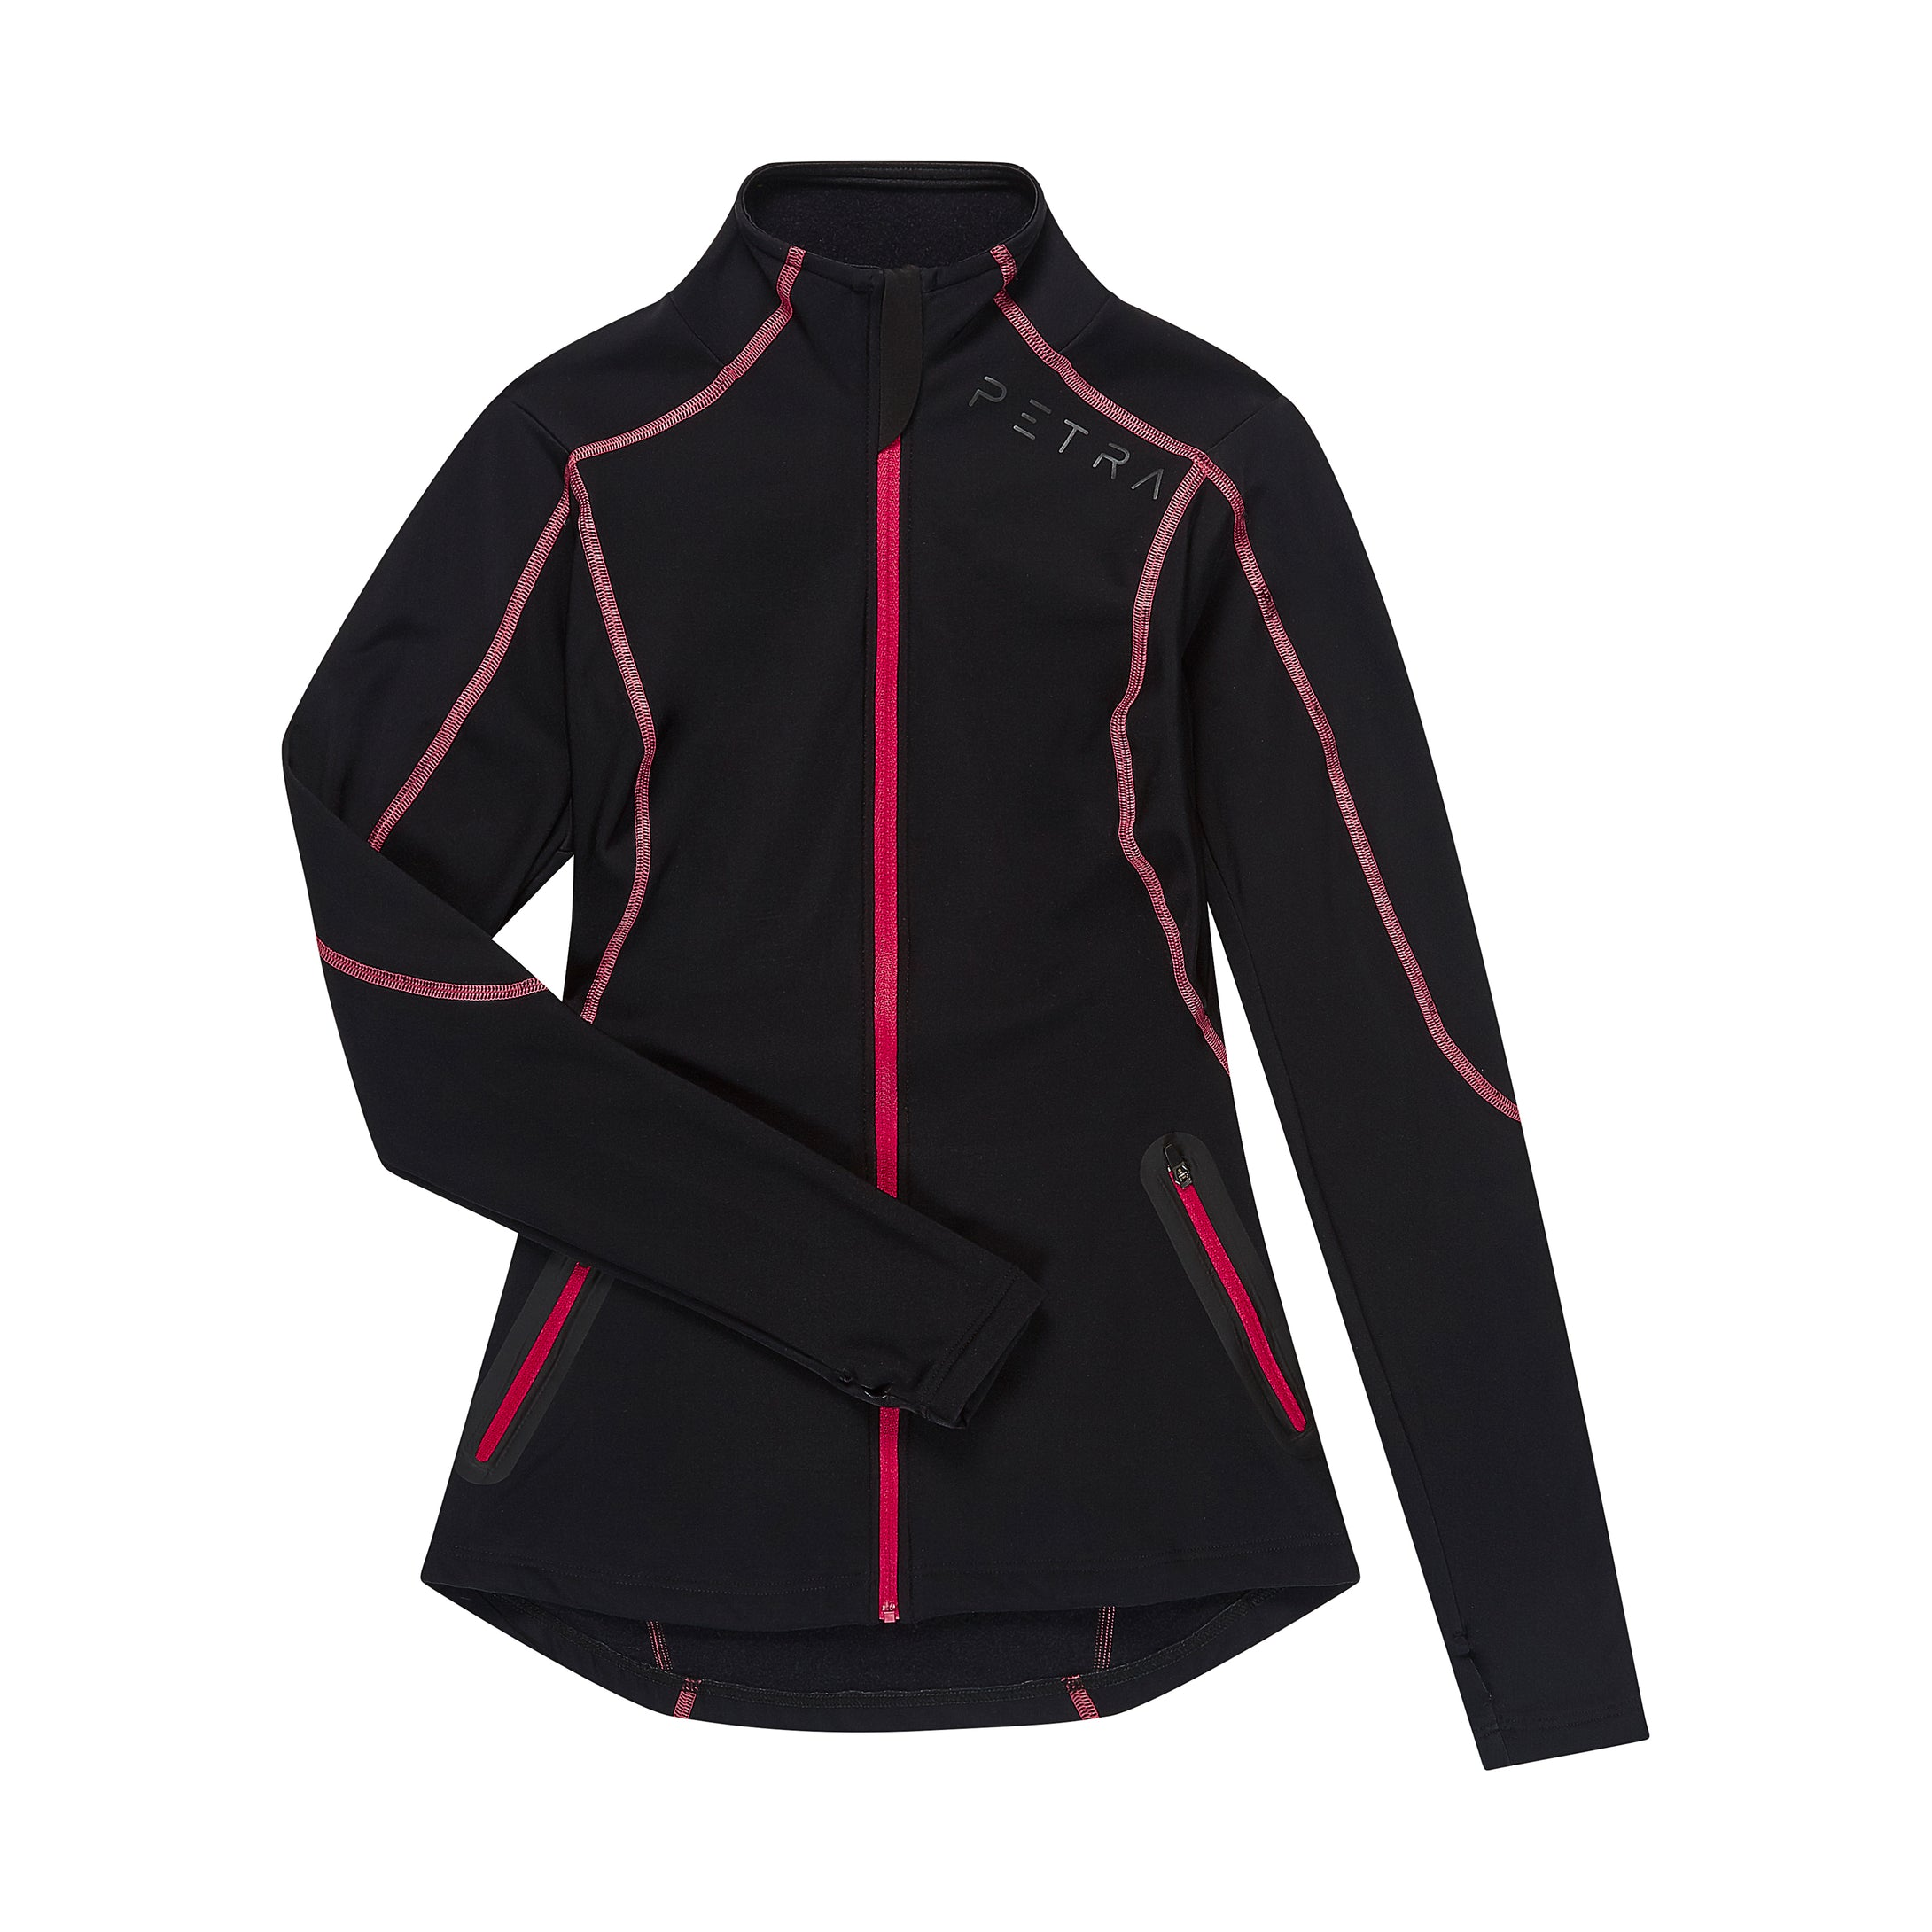 Women's fitted mid layer jacket front view